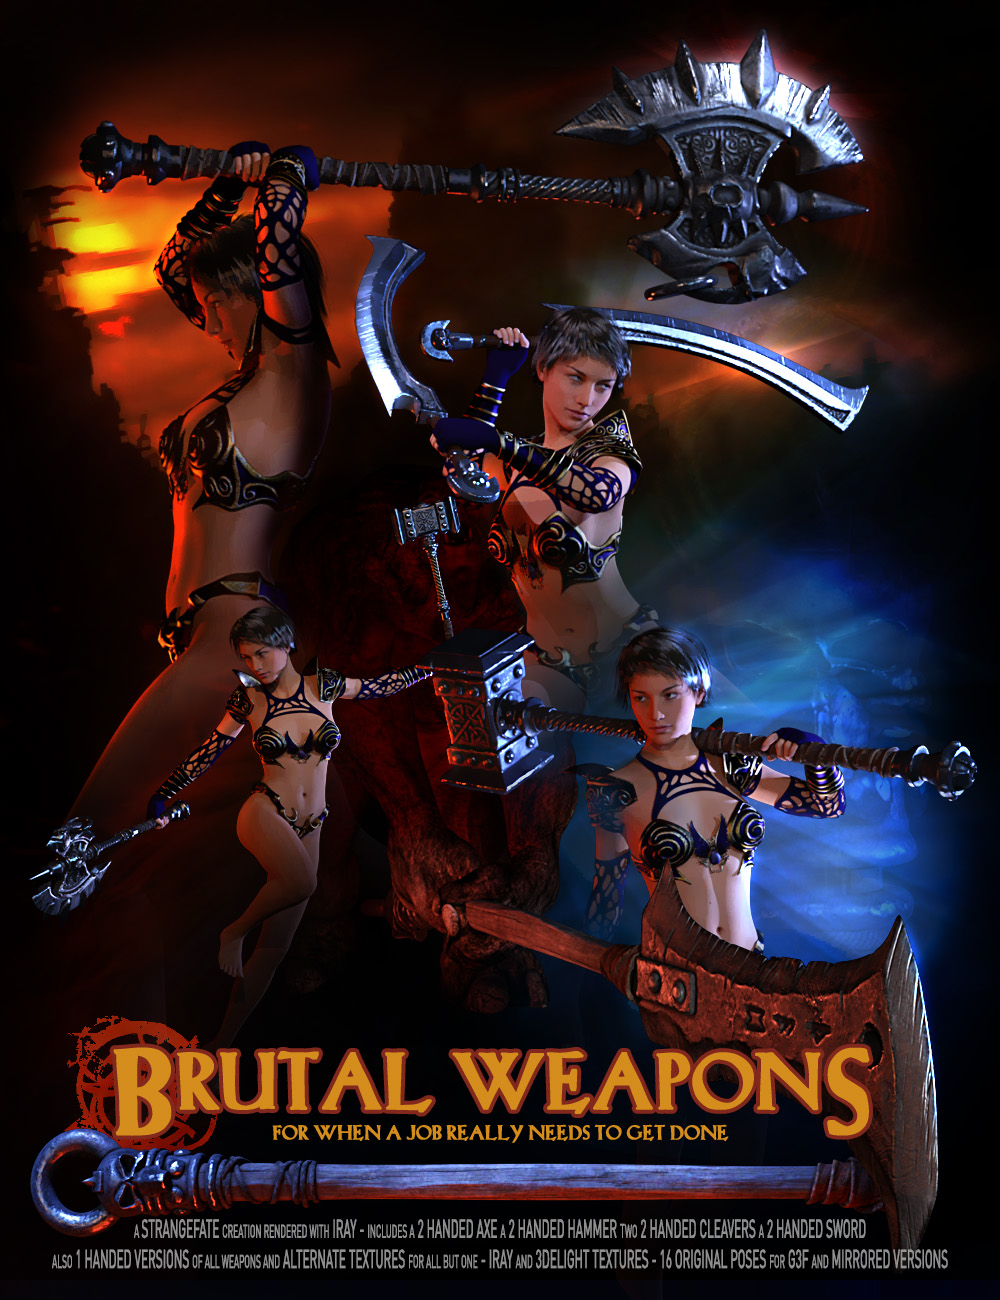 Brutal Weapons and Poses by: Strangefate, 3D Models by Daz 3D